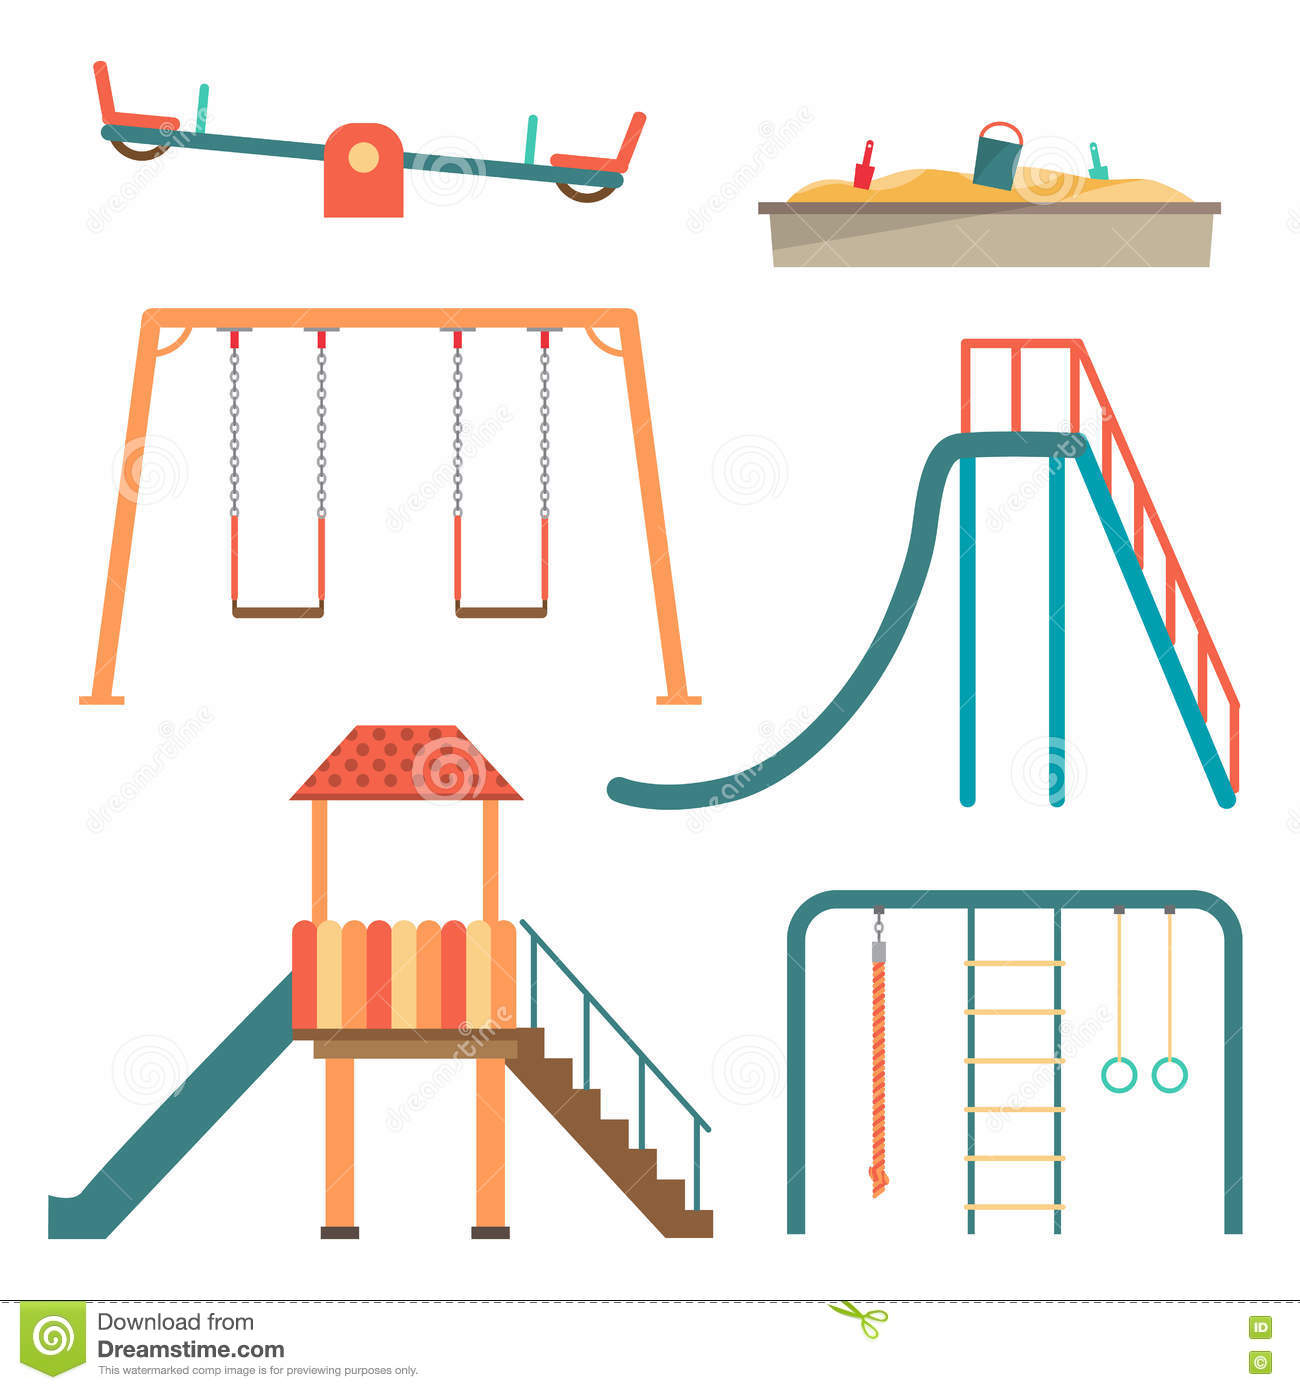 Ladder Cartoons, Illustrations & Vector Stock Images ...